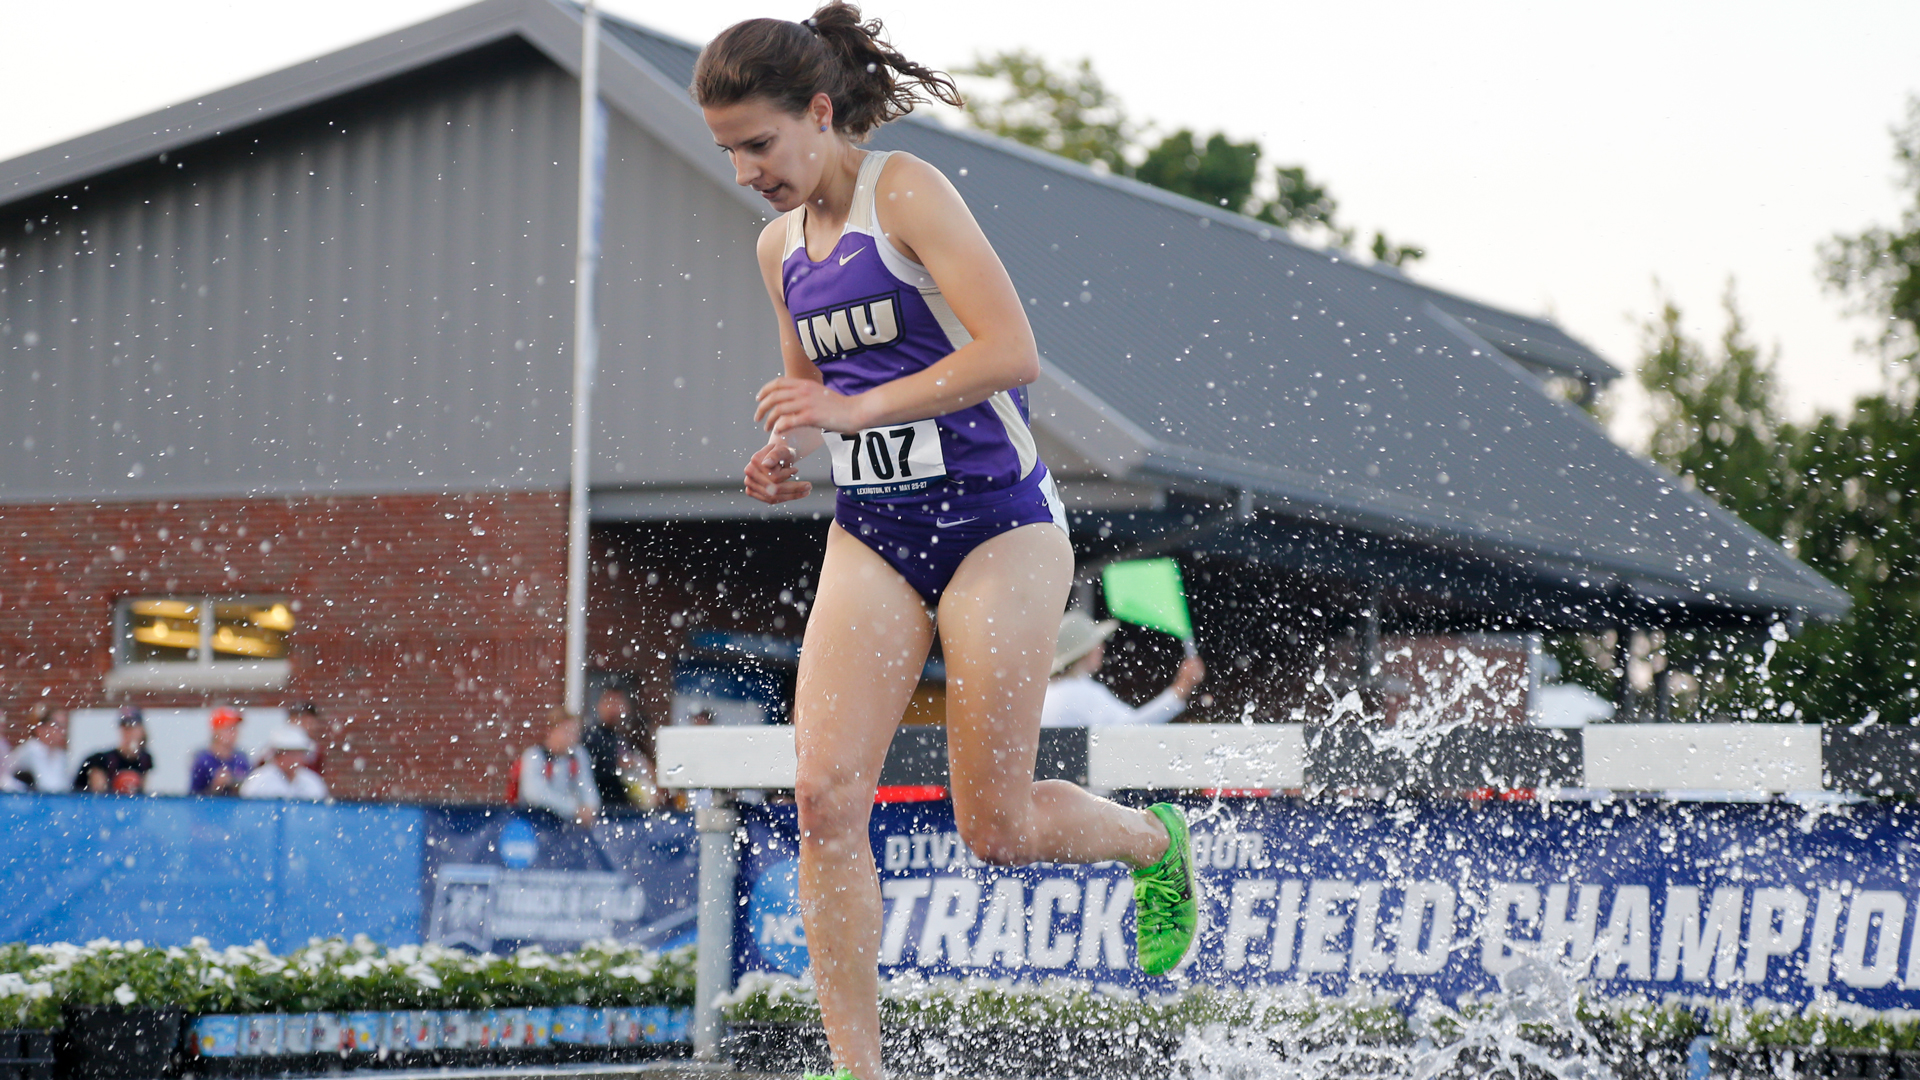 Track & Field: Mundell Completes Career at NCAA Preliminary Steeplechase)